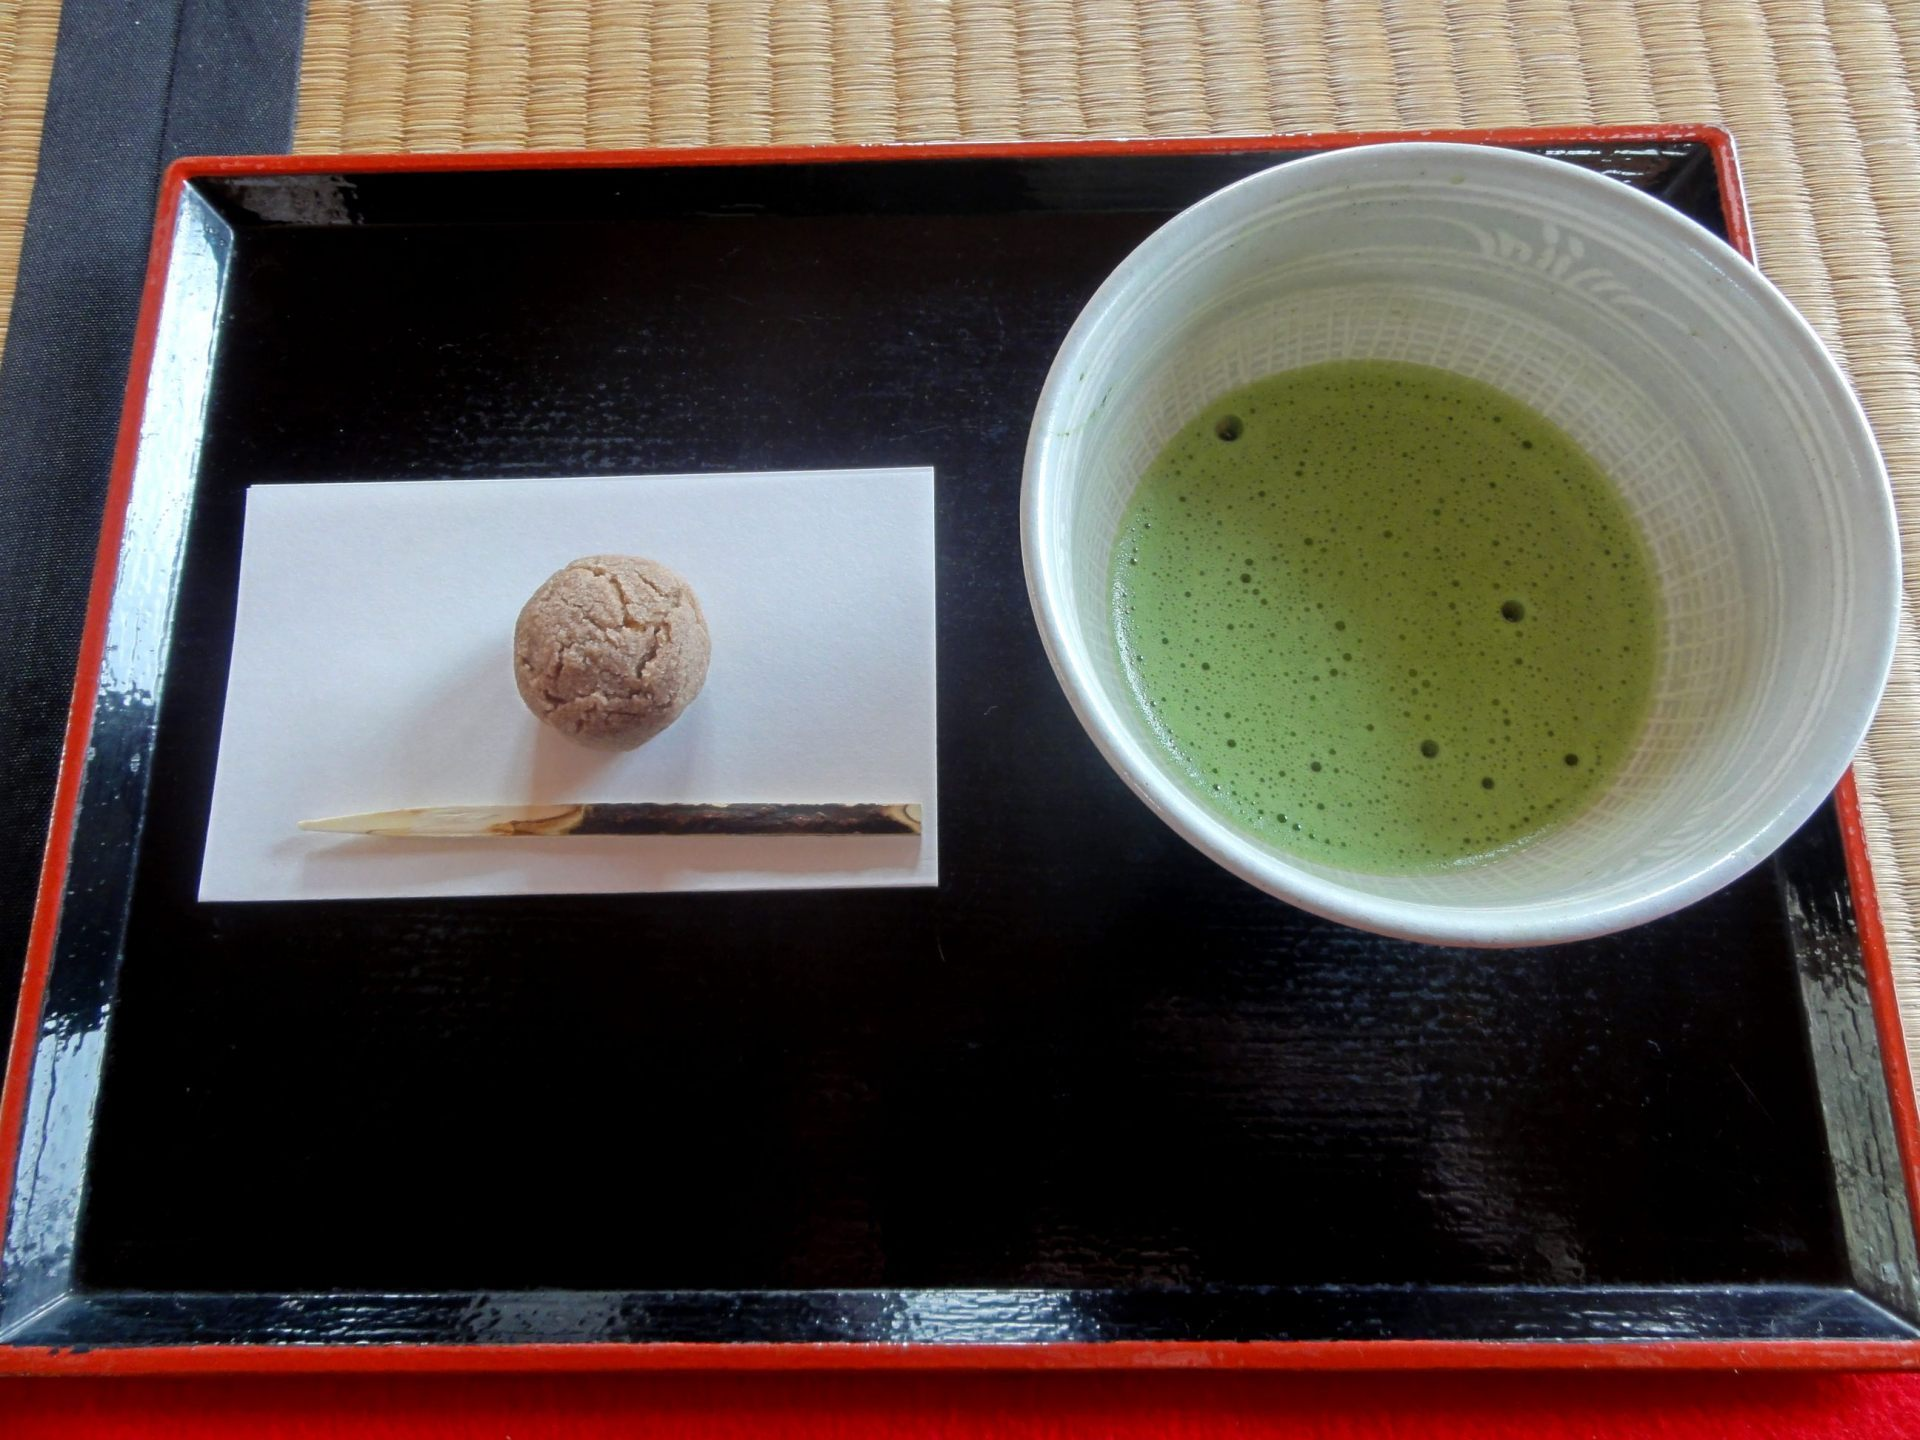 Matcha & Japanese Sweets Set (510 yen)